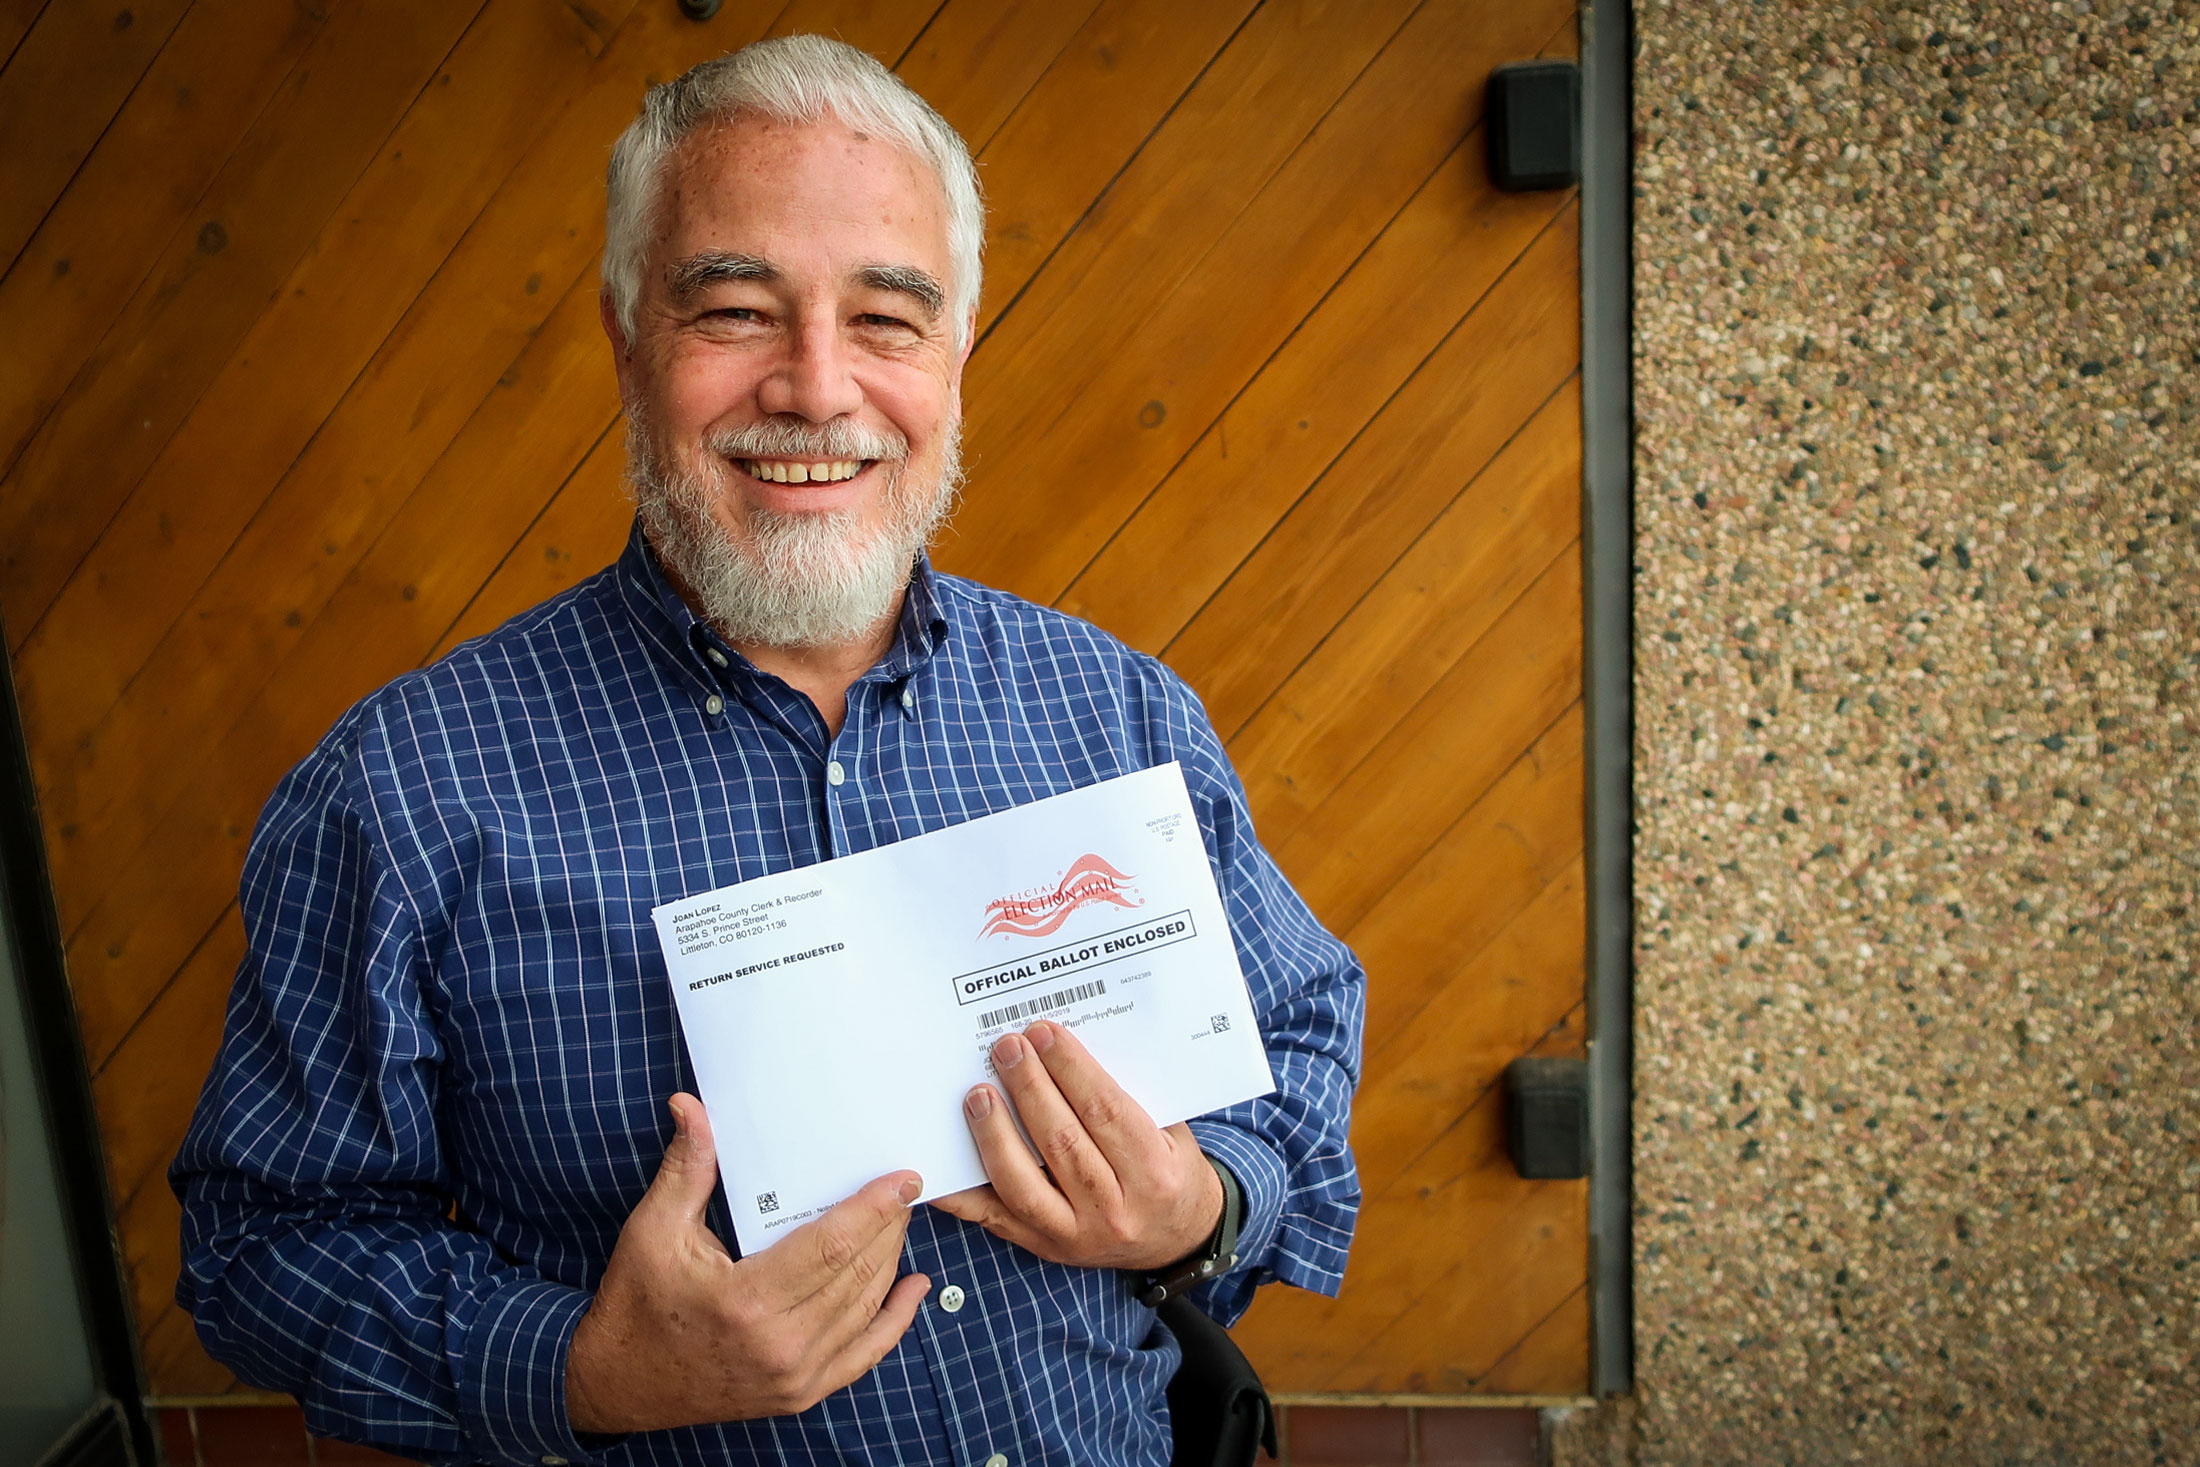 John Waber of Littleton, and his ballot, stopped by the Colorado Public Radio studios to find out why some questions were printed in ALL CAPS, Oct. 17, 2019.